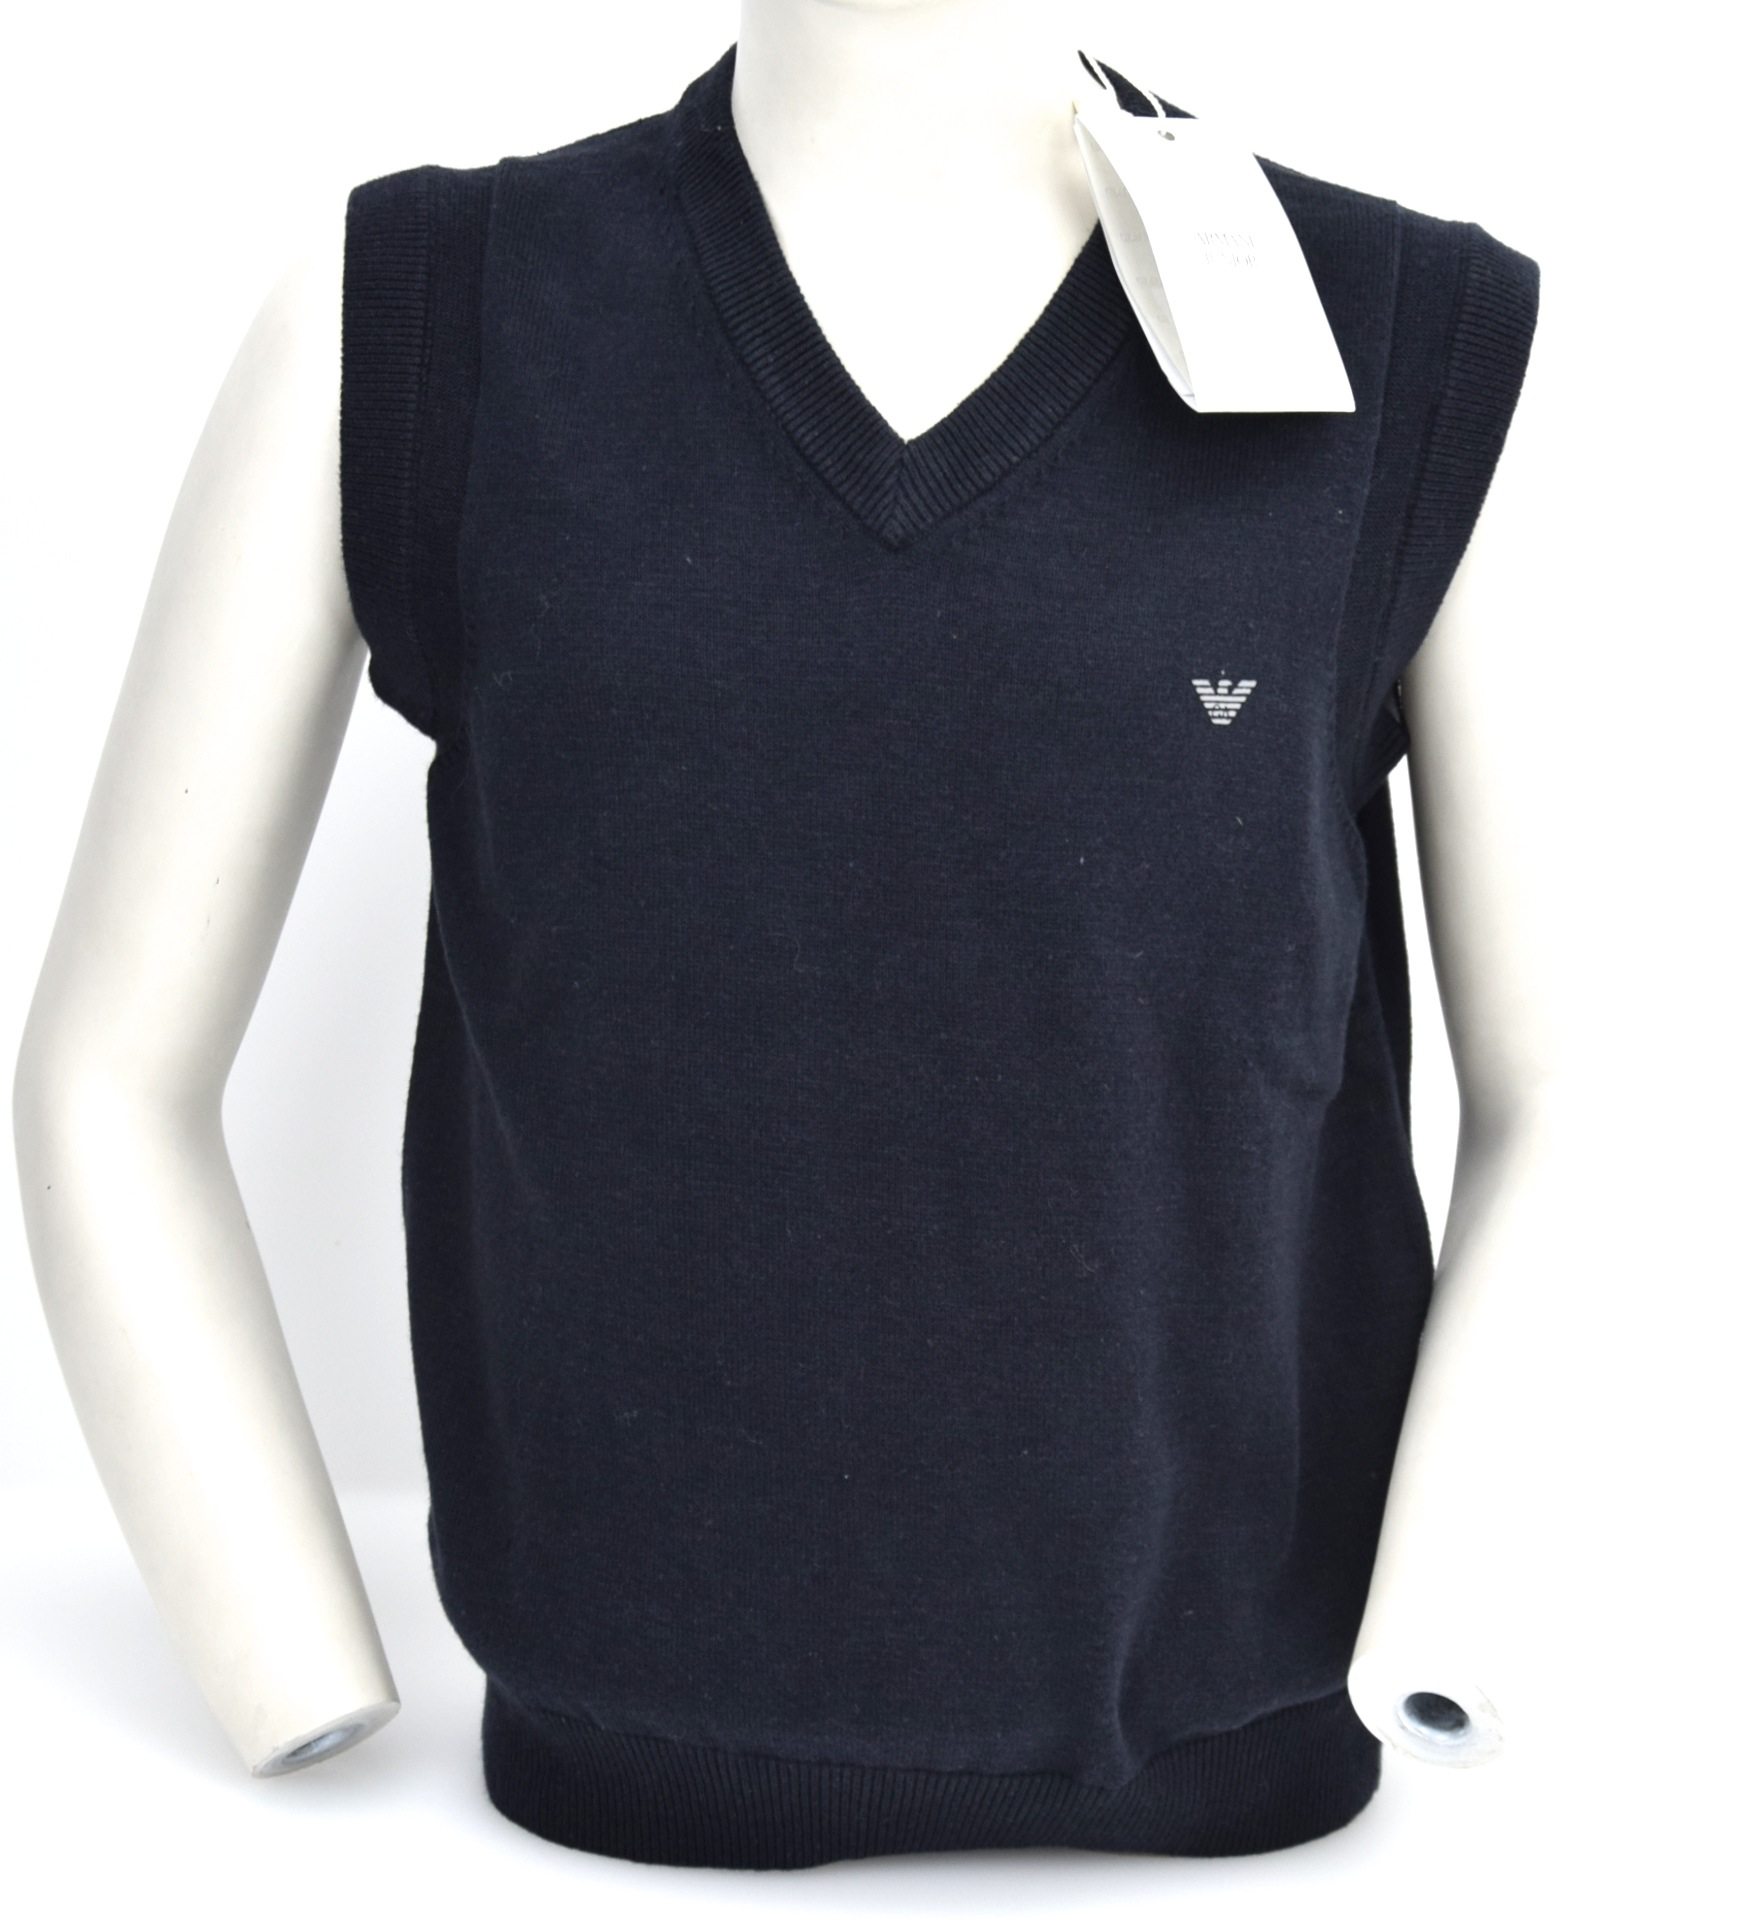 ff059e6ed77b ARMANI JUNIOR BOY GILET VEST PULLOVER JUMPER SWEATER V-NECK COTTON ...